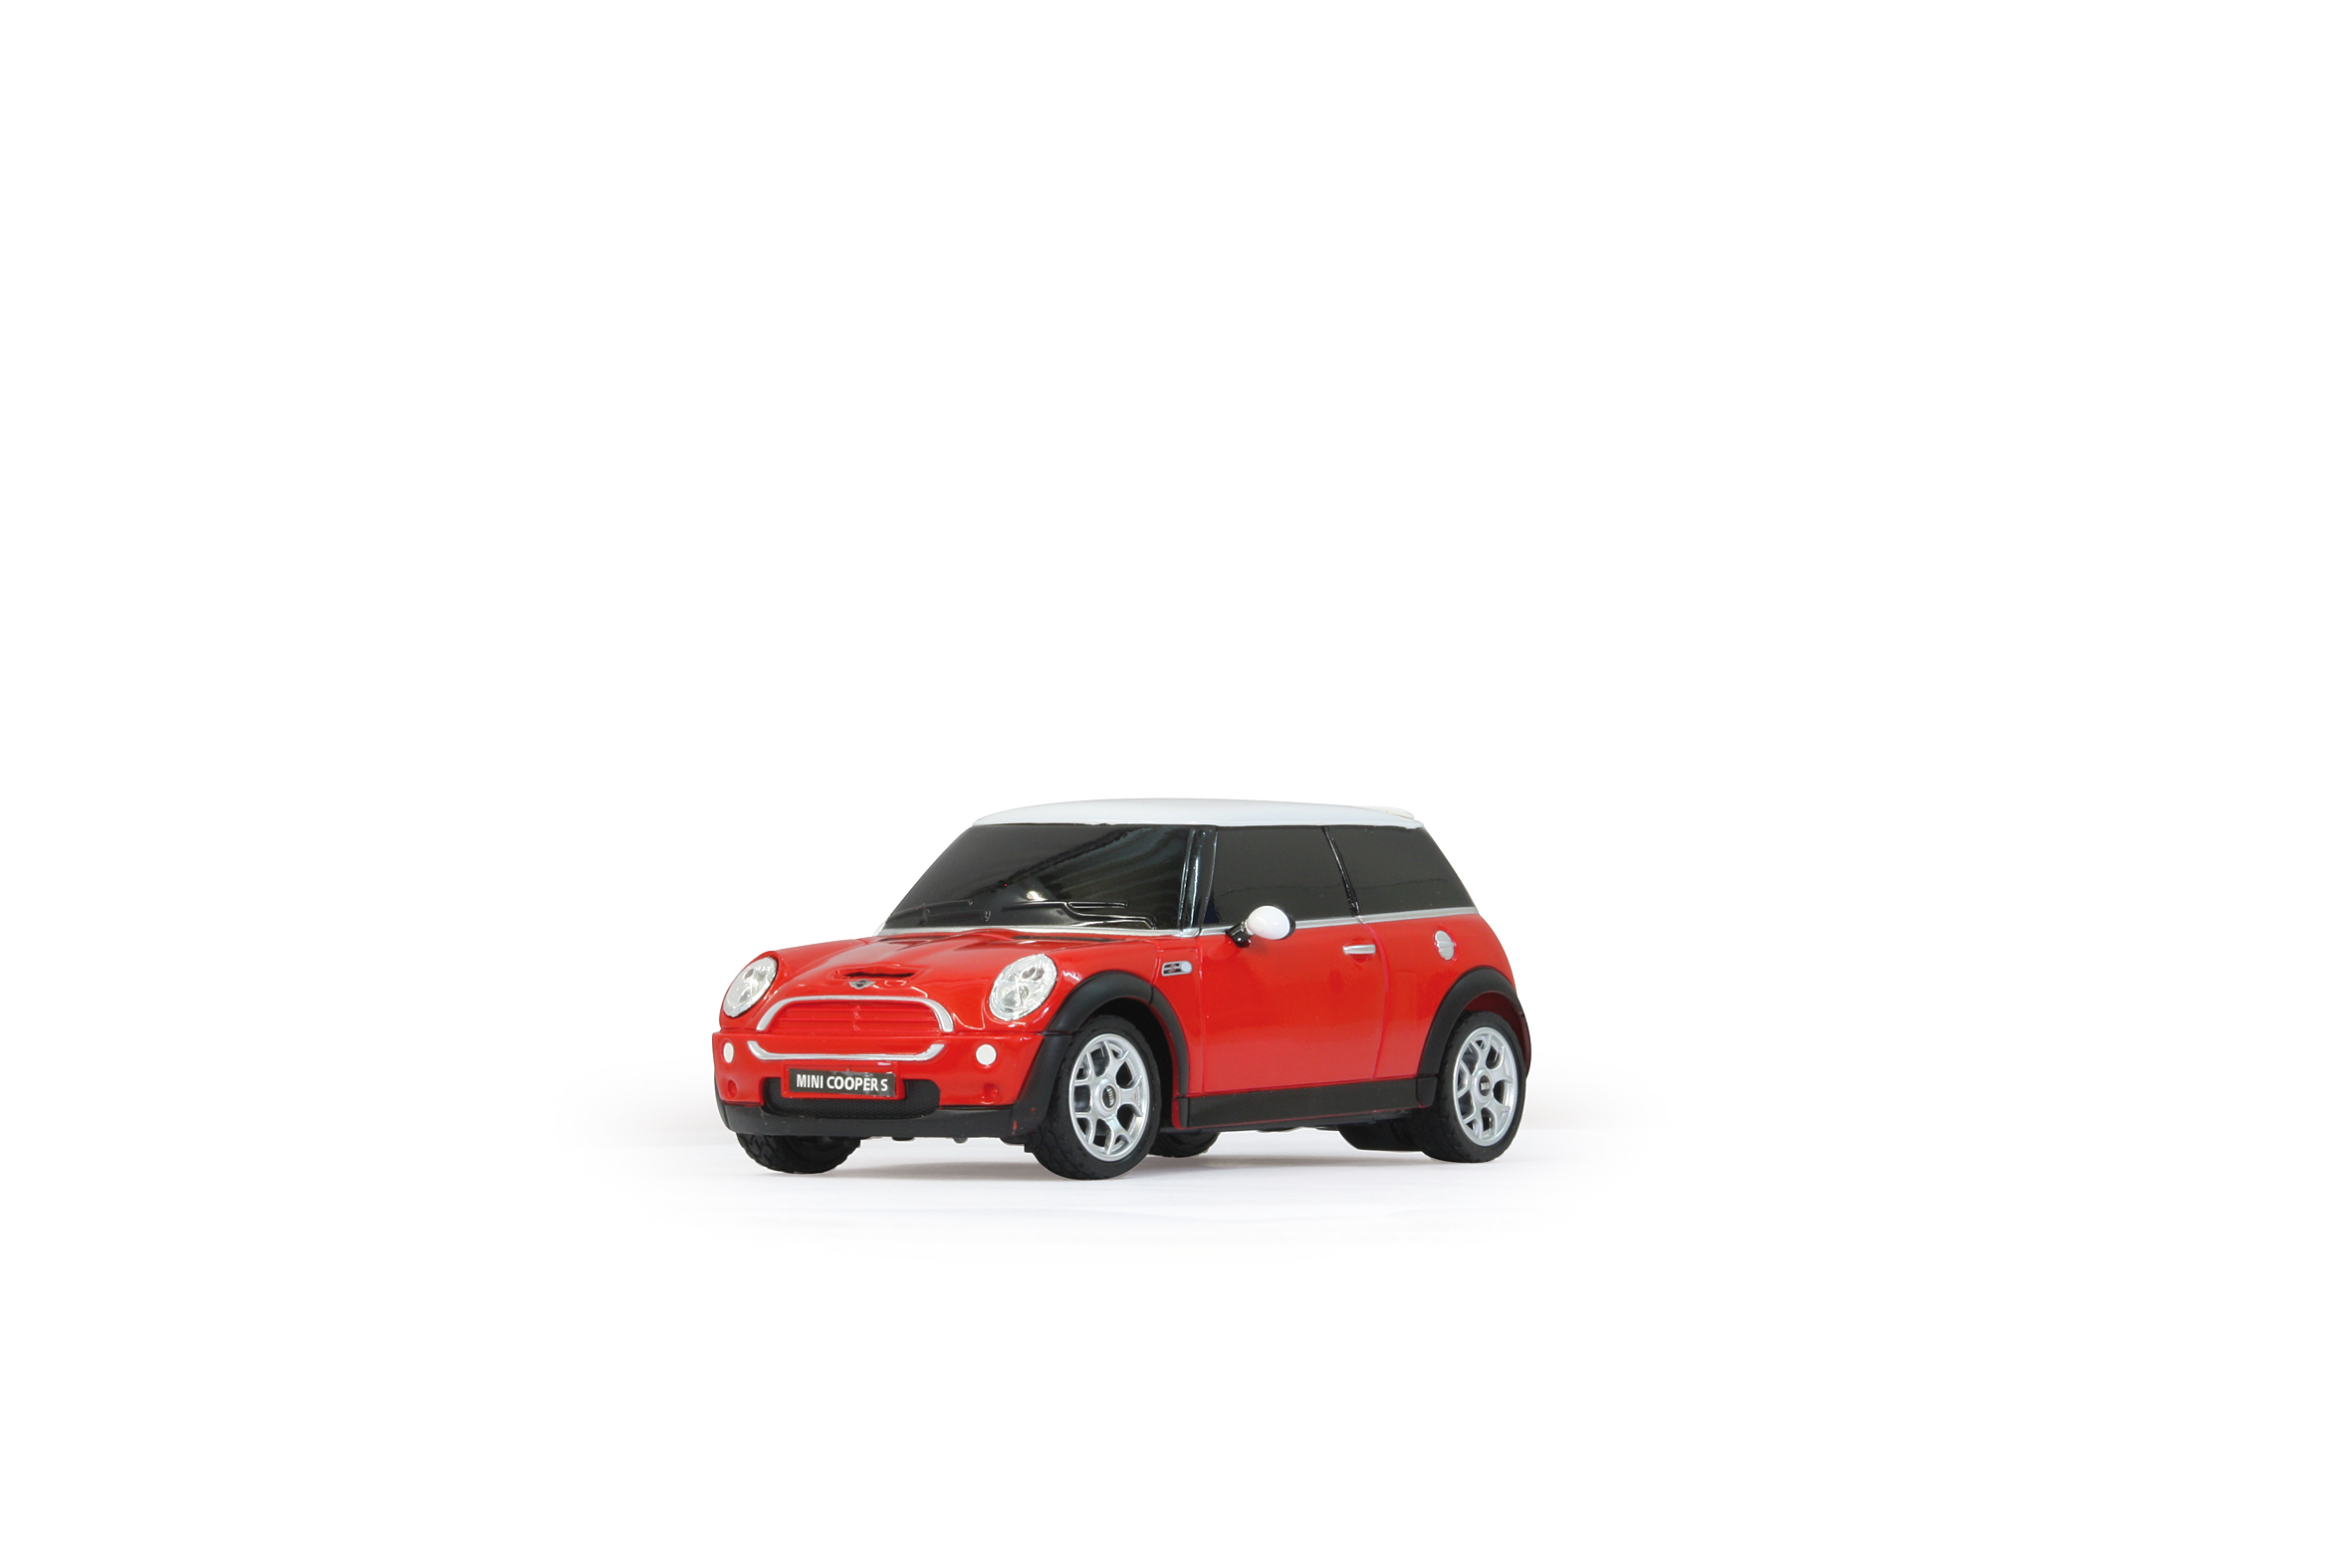 mini cooper s 1 24 rot modellsport schweighofer. Black Bedroom Furniture Sets. Home Design Ideas